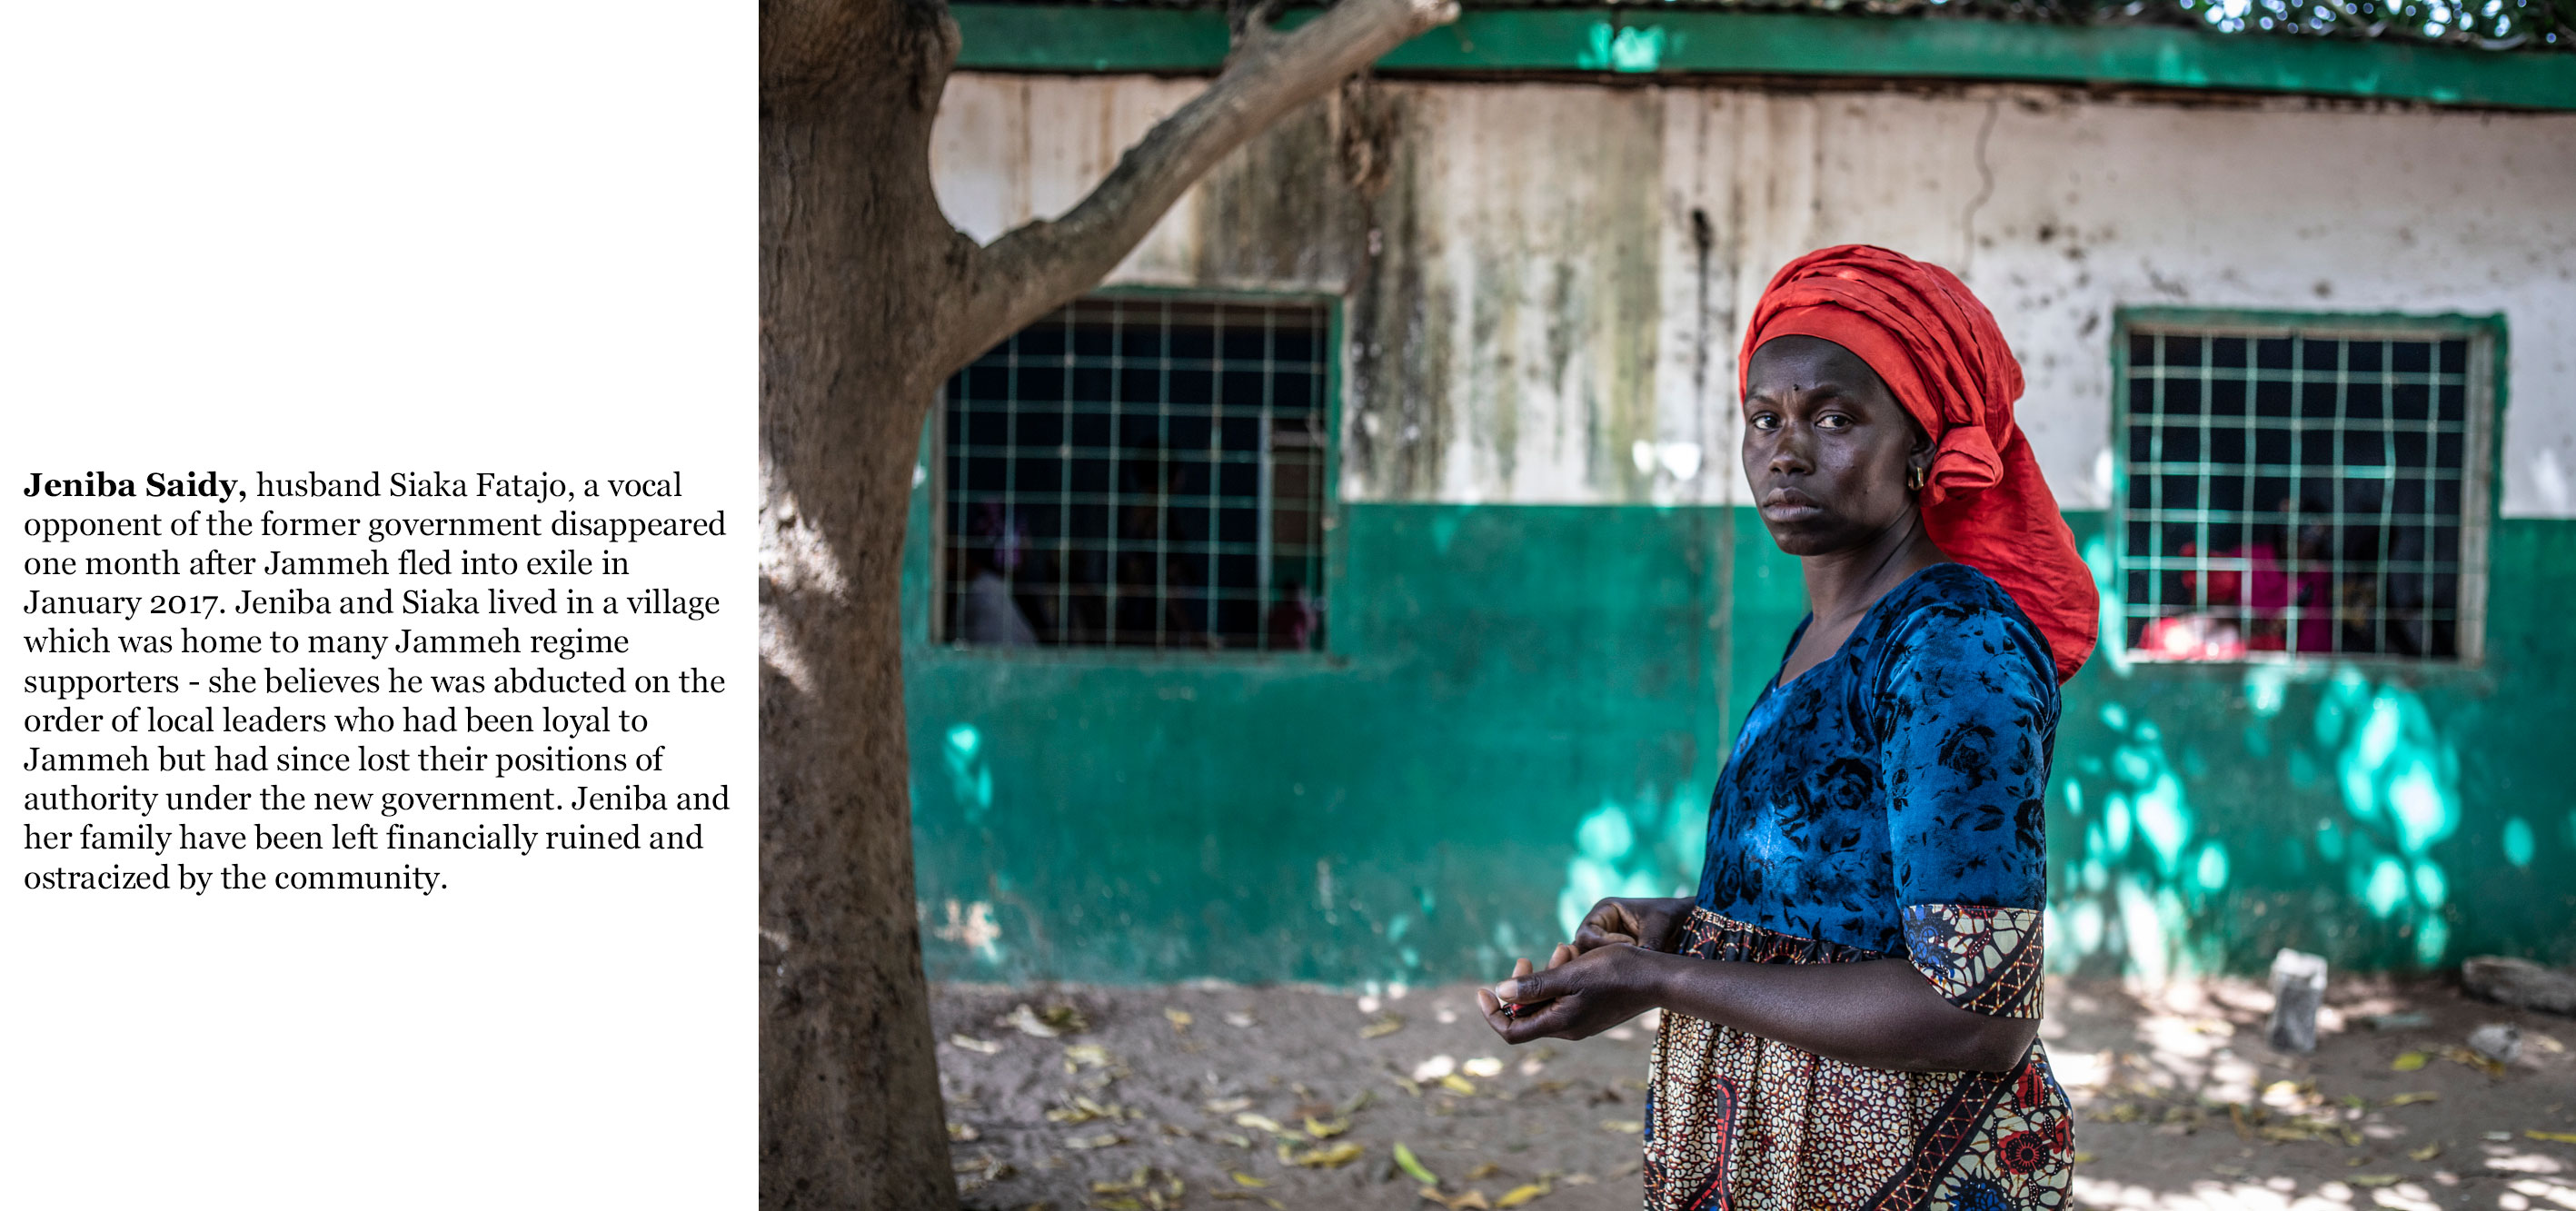 Gambia victims and resisters -Jeniba_Saidy_her husband Saika Fatajo opponent of Yahya Jammeh  disappeared after Jammeh fled into exile  a3585_TEXT_web ©Jason Florio